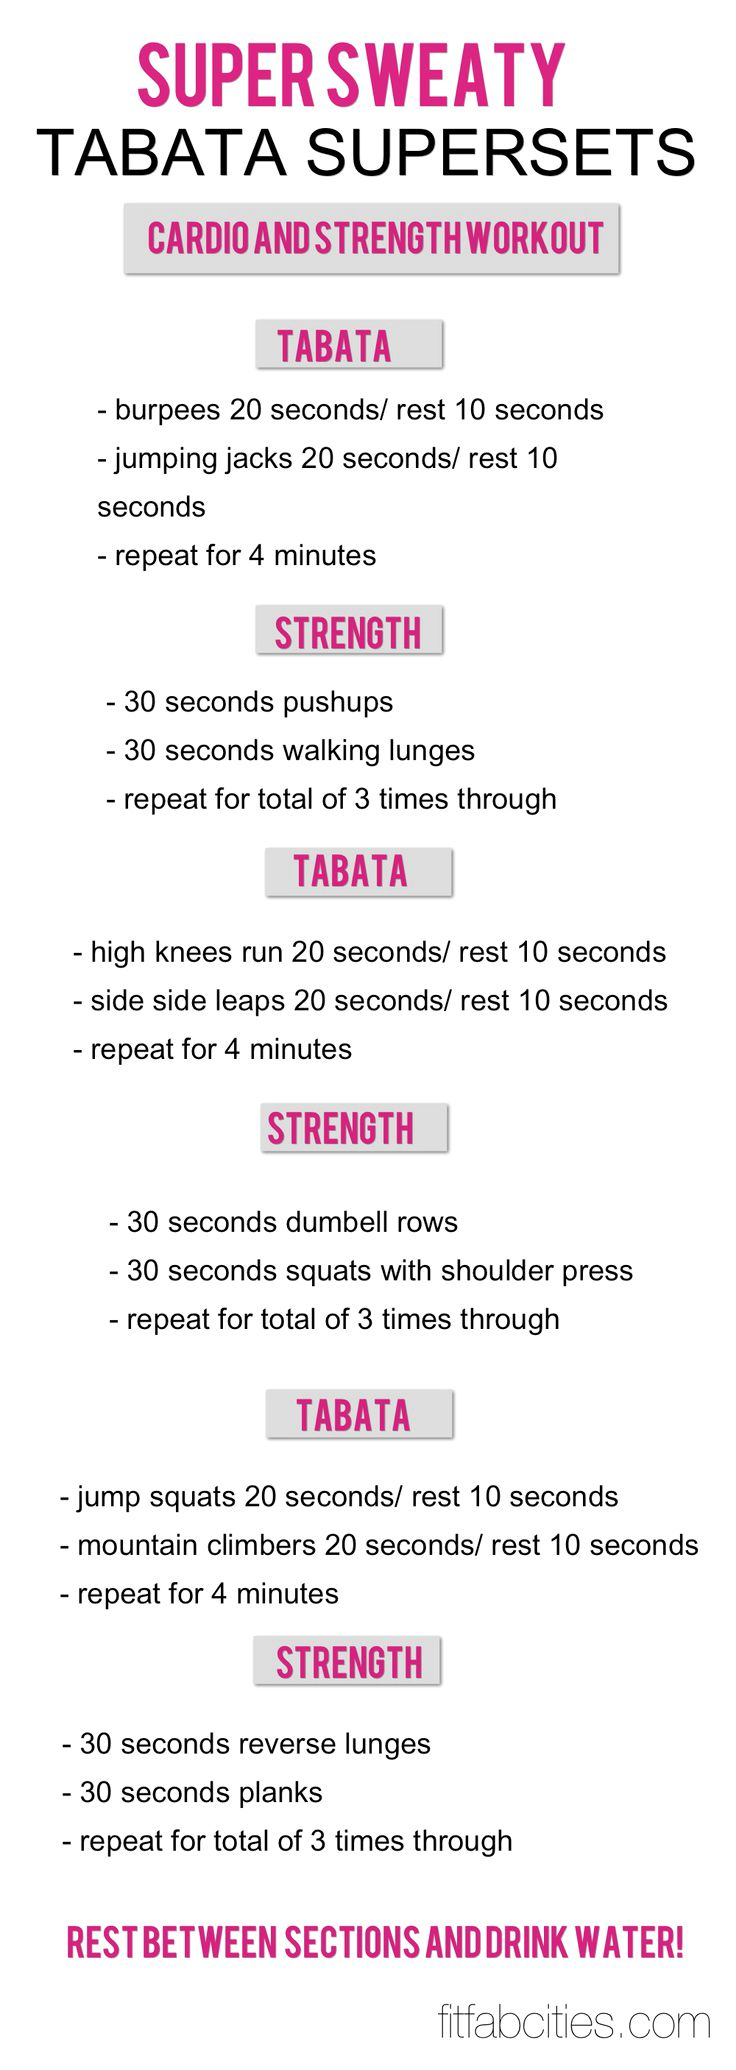 Cardio and strength! Maybe I could try this when its nasty outside on run days Check out the website to see more